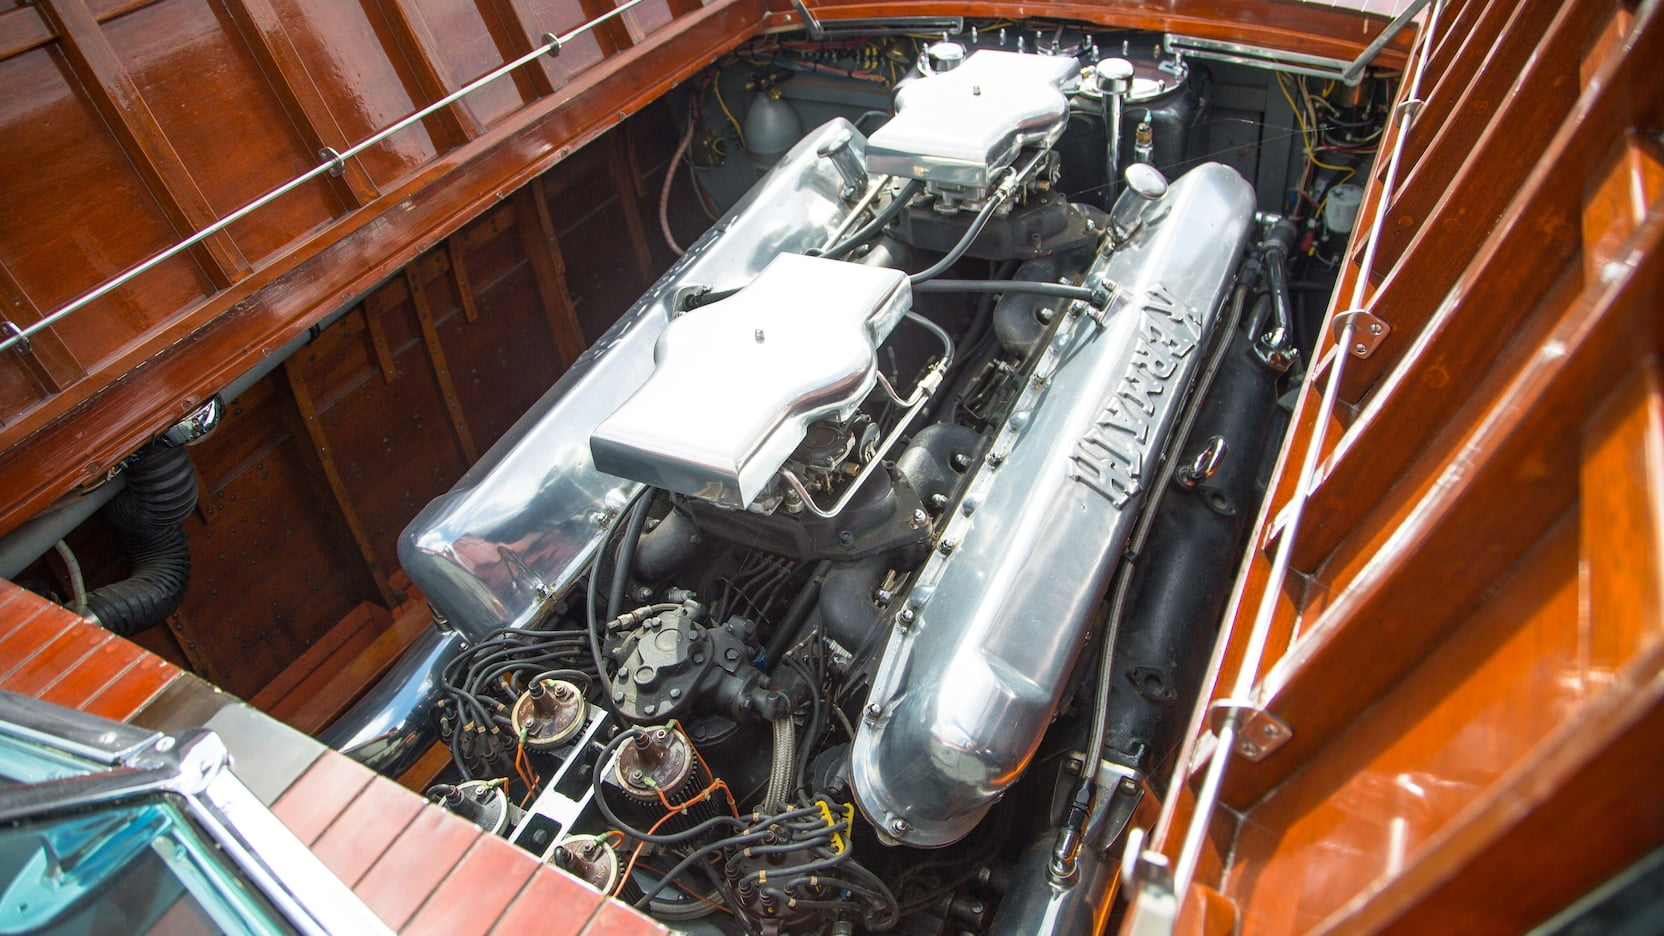 Kermath Sea Raider engine The 1,560 cubic inch V12 48 valves 24 spark plugs twin four barrel carburettors